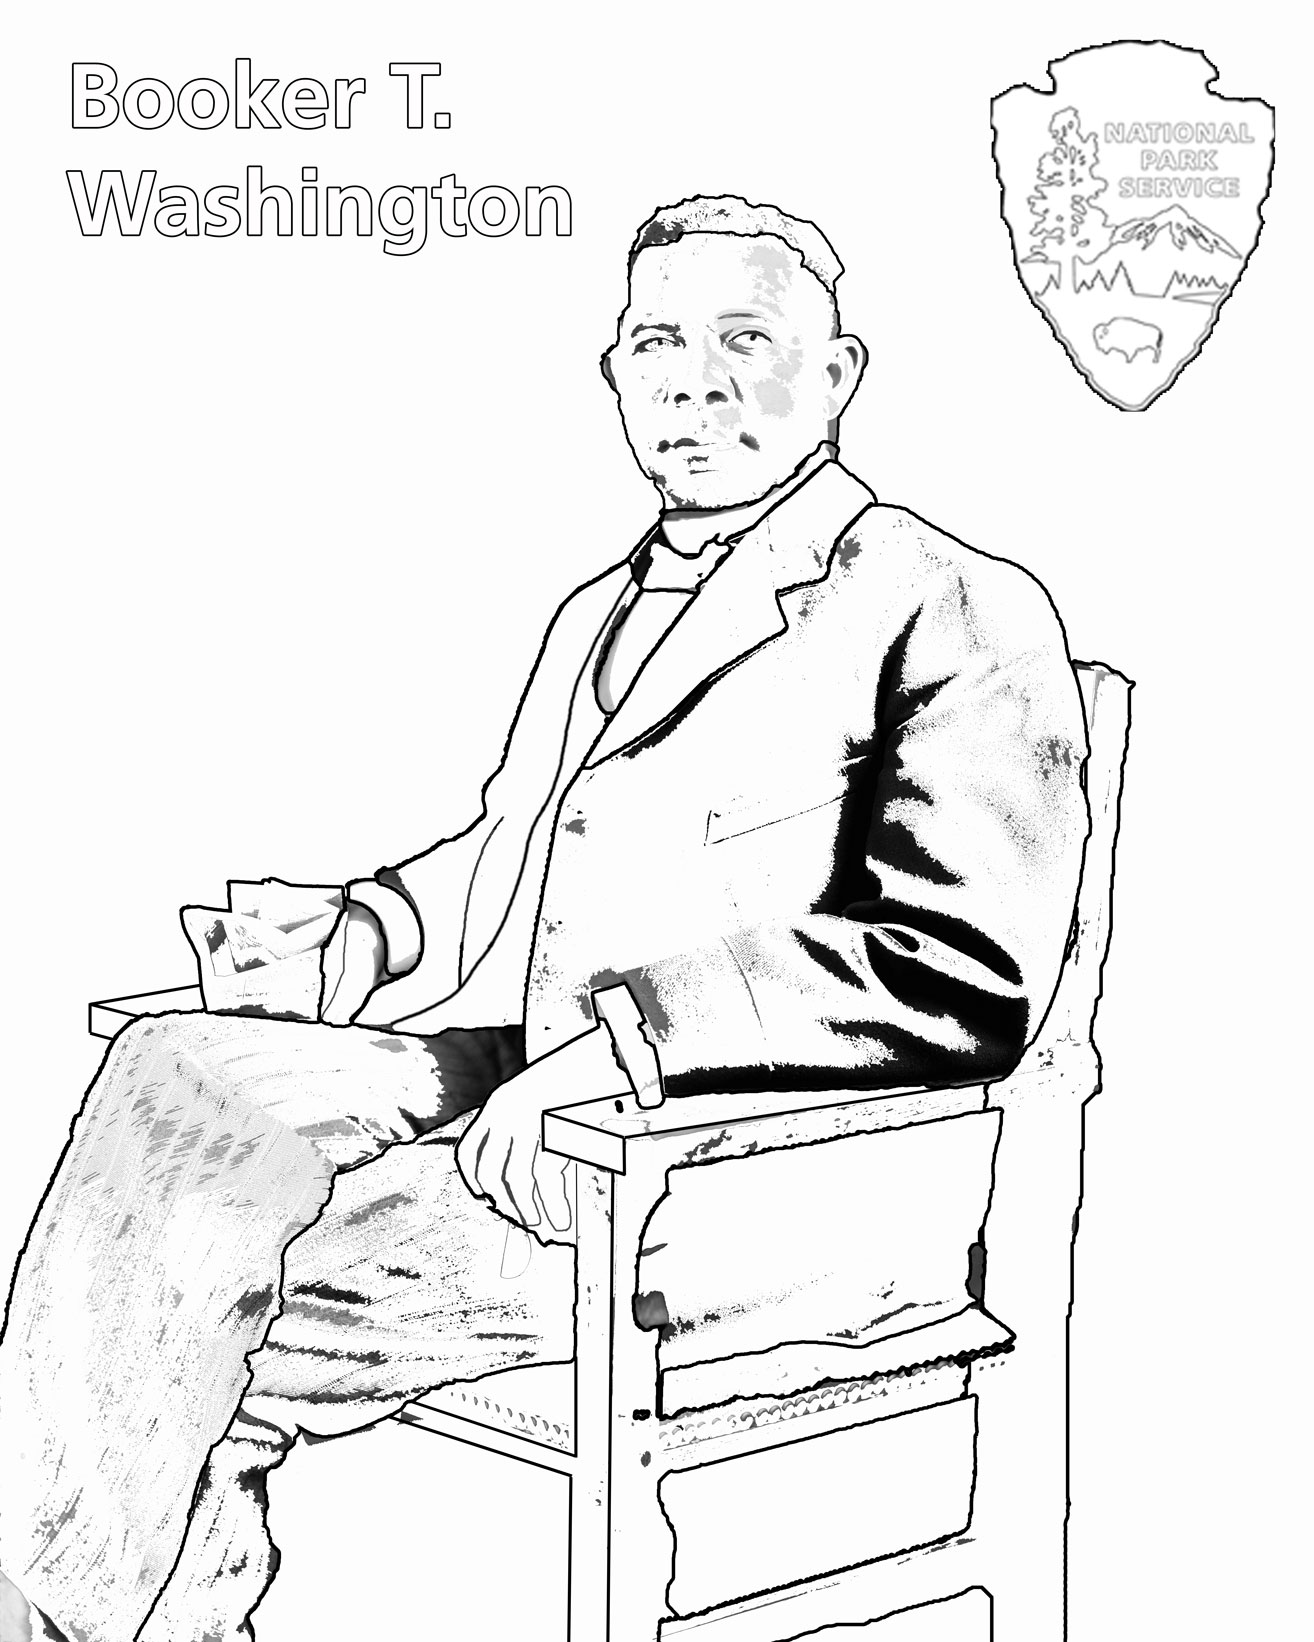 booker t washington u thru history k 1 booker t washington coloring page nps gov chyo upload booker t washington outline jpg